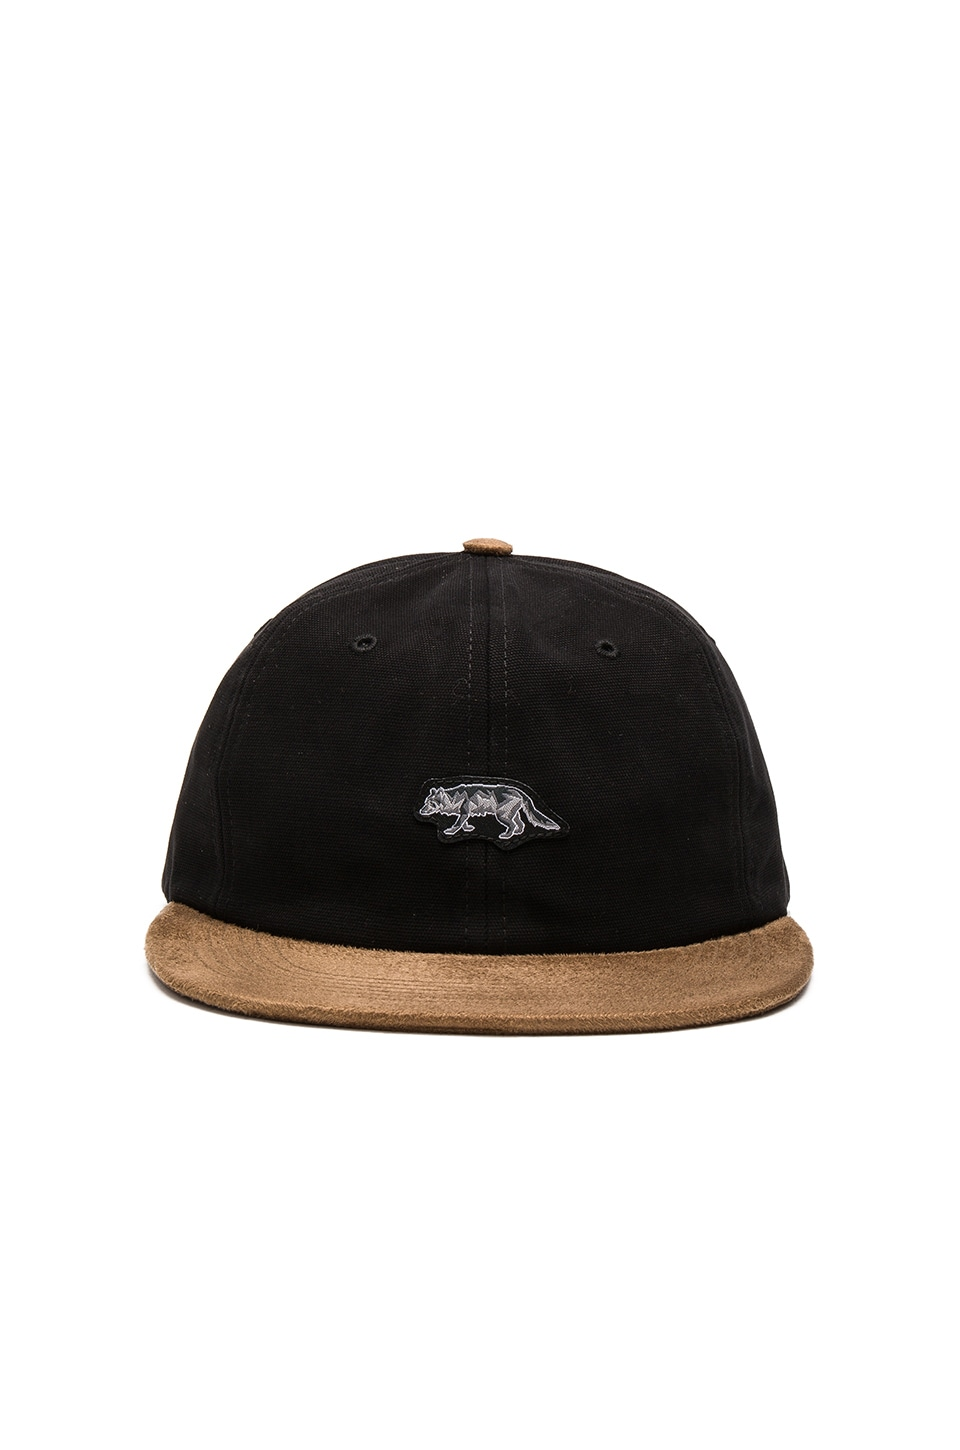 Raised by Wolves Geowulf Polo Cap in Black